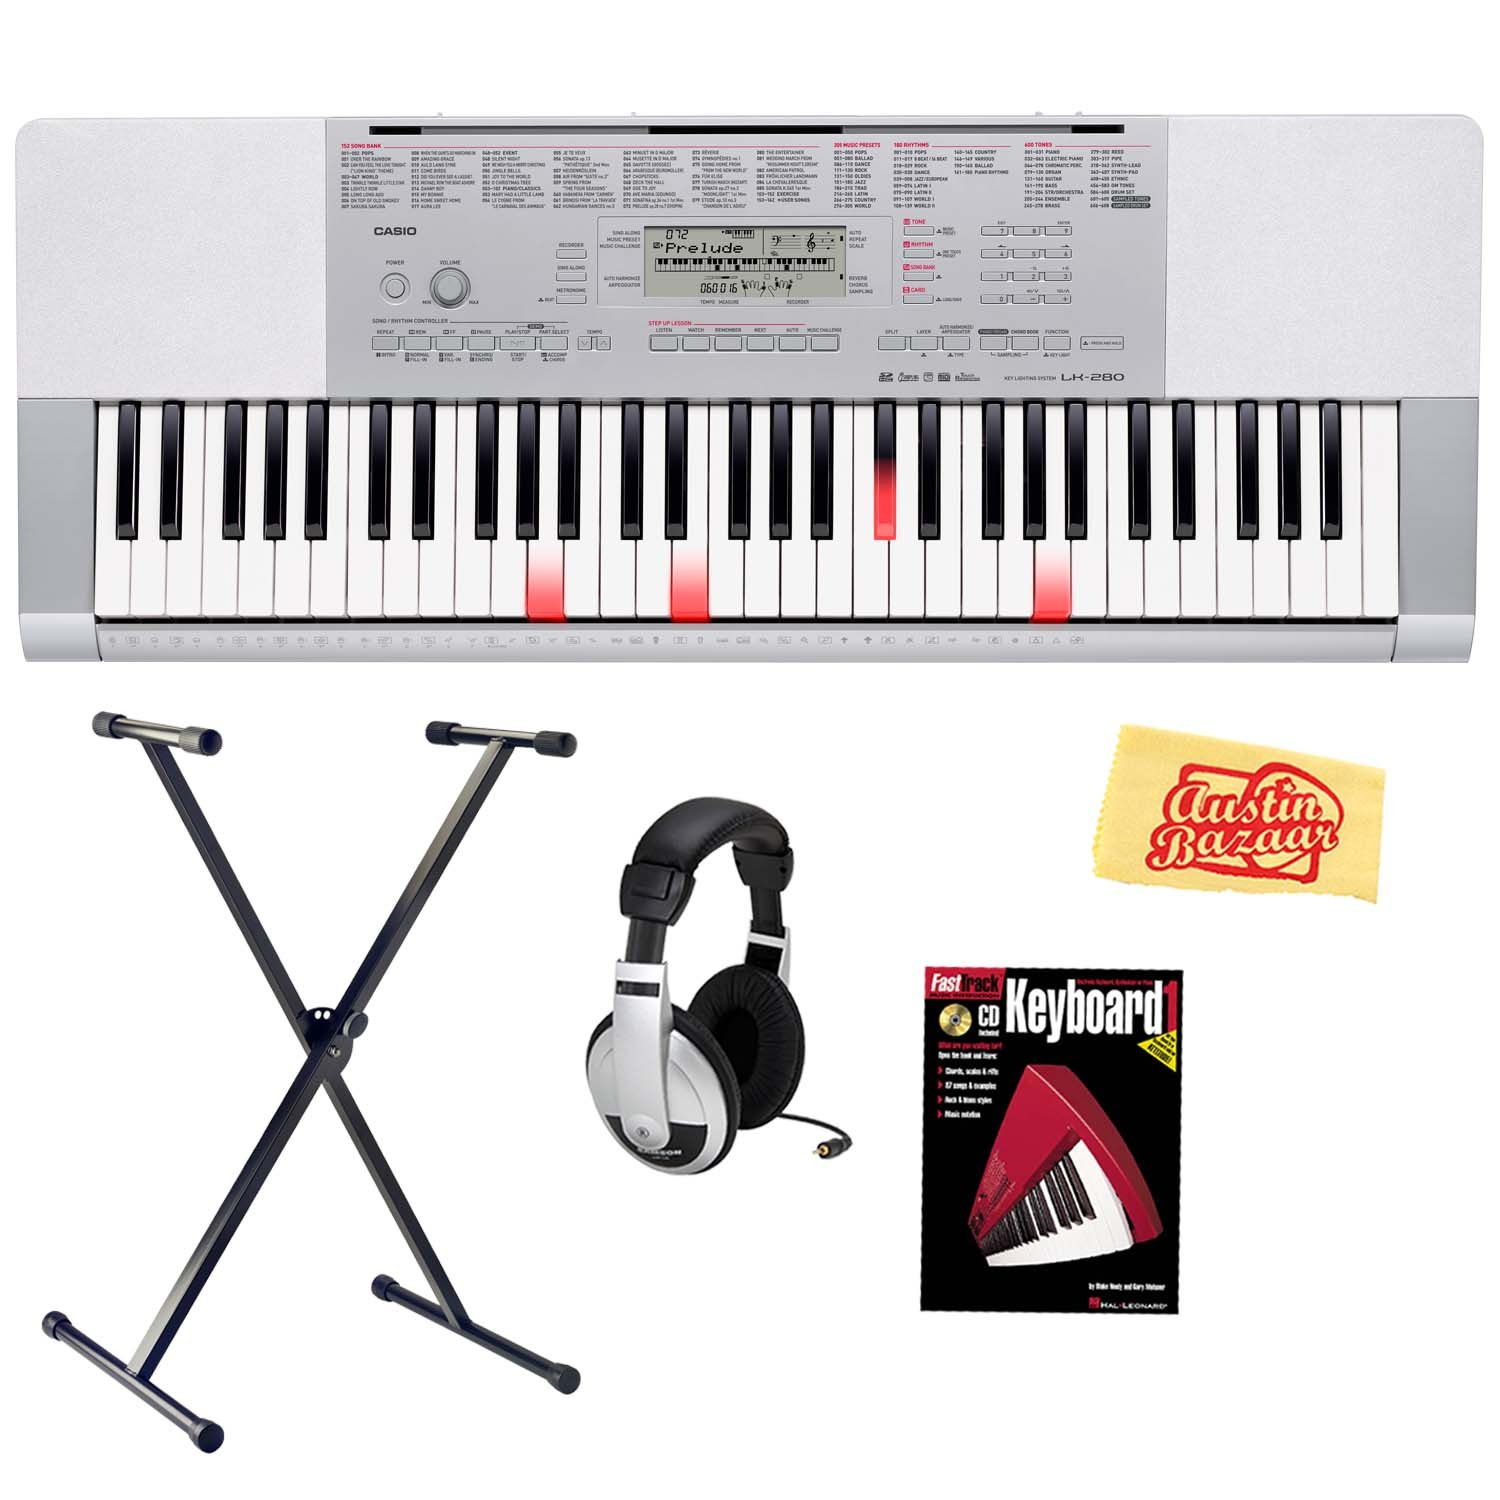 Casio LK-280 61-Key Portable Keyboard with Instructional Light-Up Keys Bundle with Keyboard Stand, Headphones, Instructional Book, and Polishing Cloth by Casio